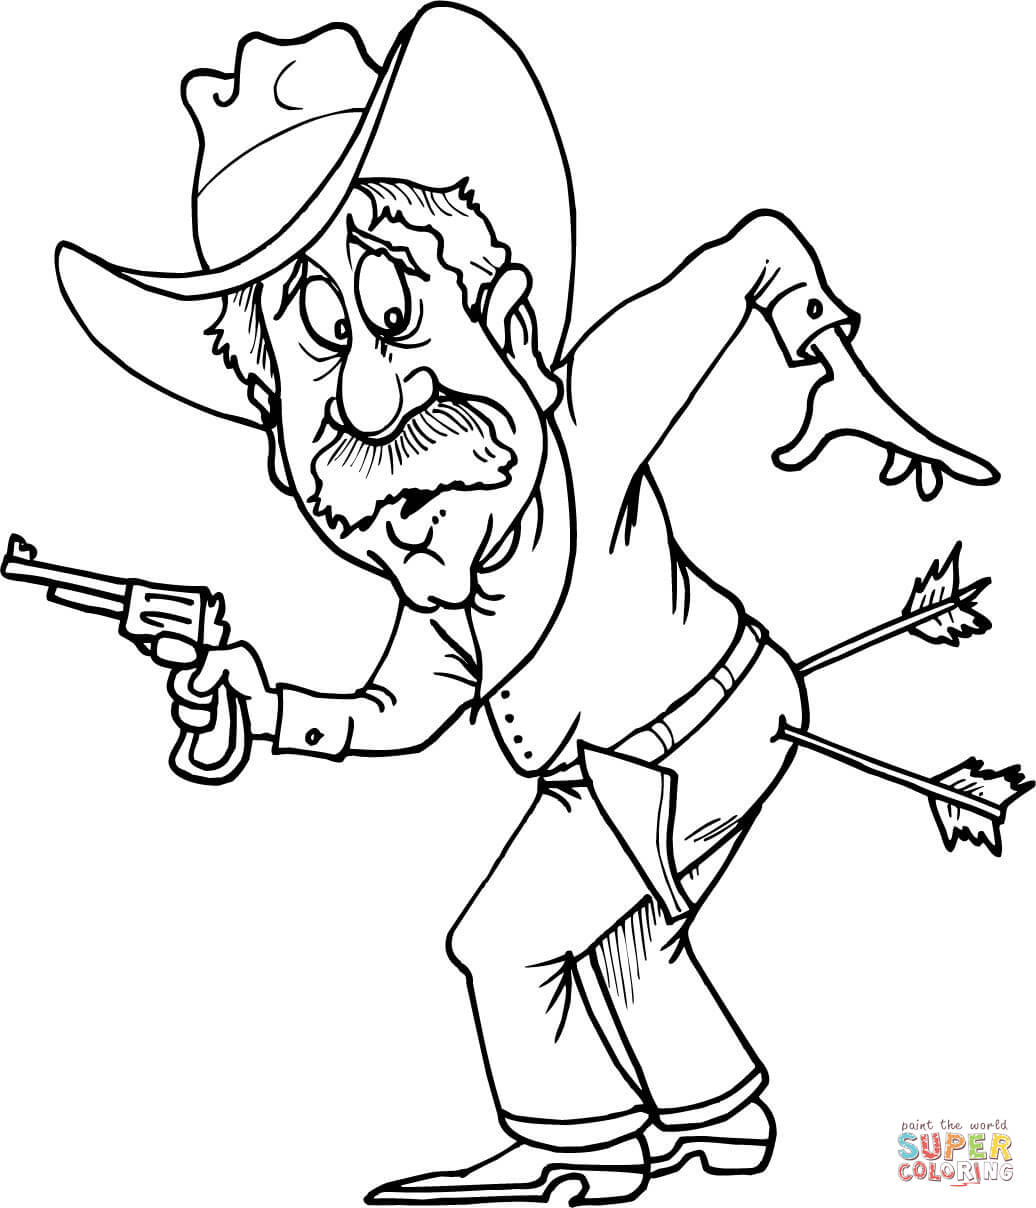 Western clipart arrow. Cowboy drawing at getdrawings